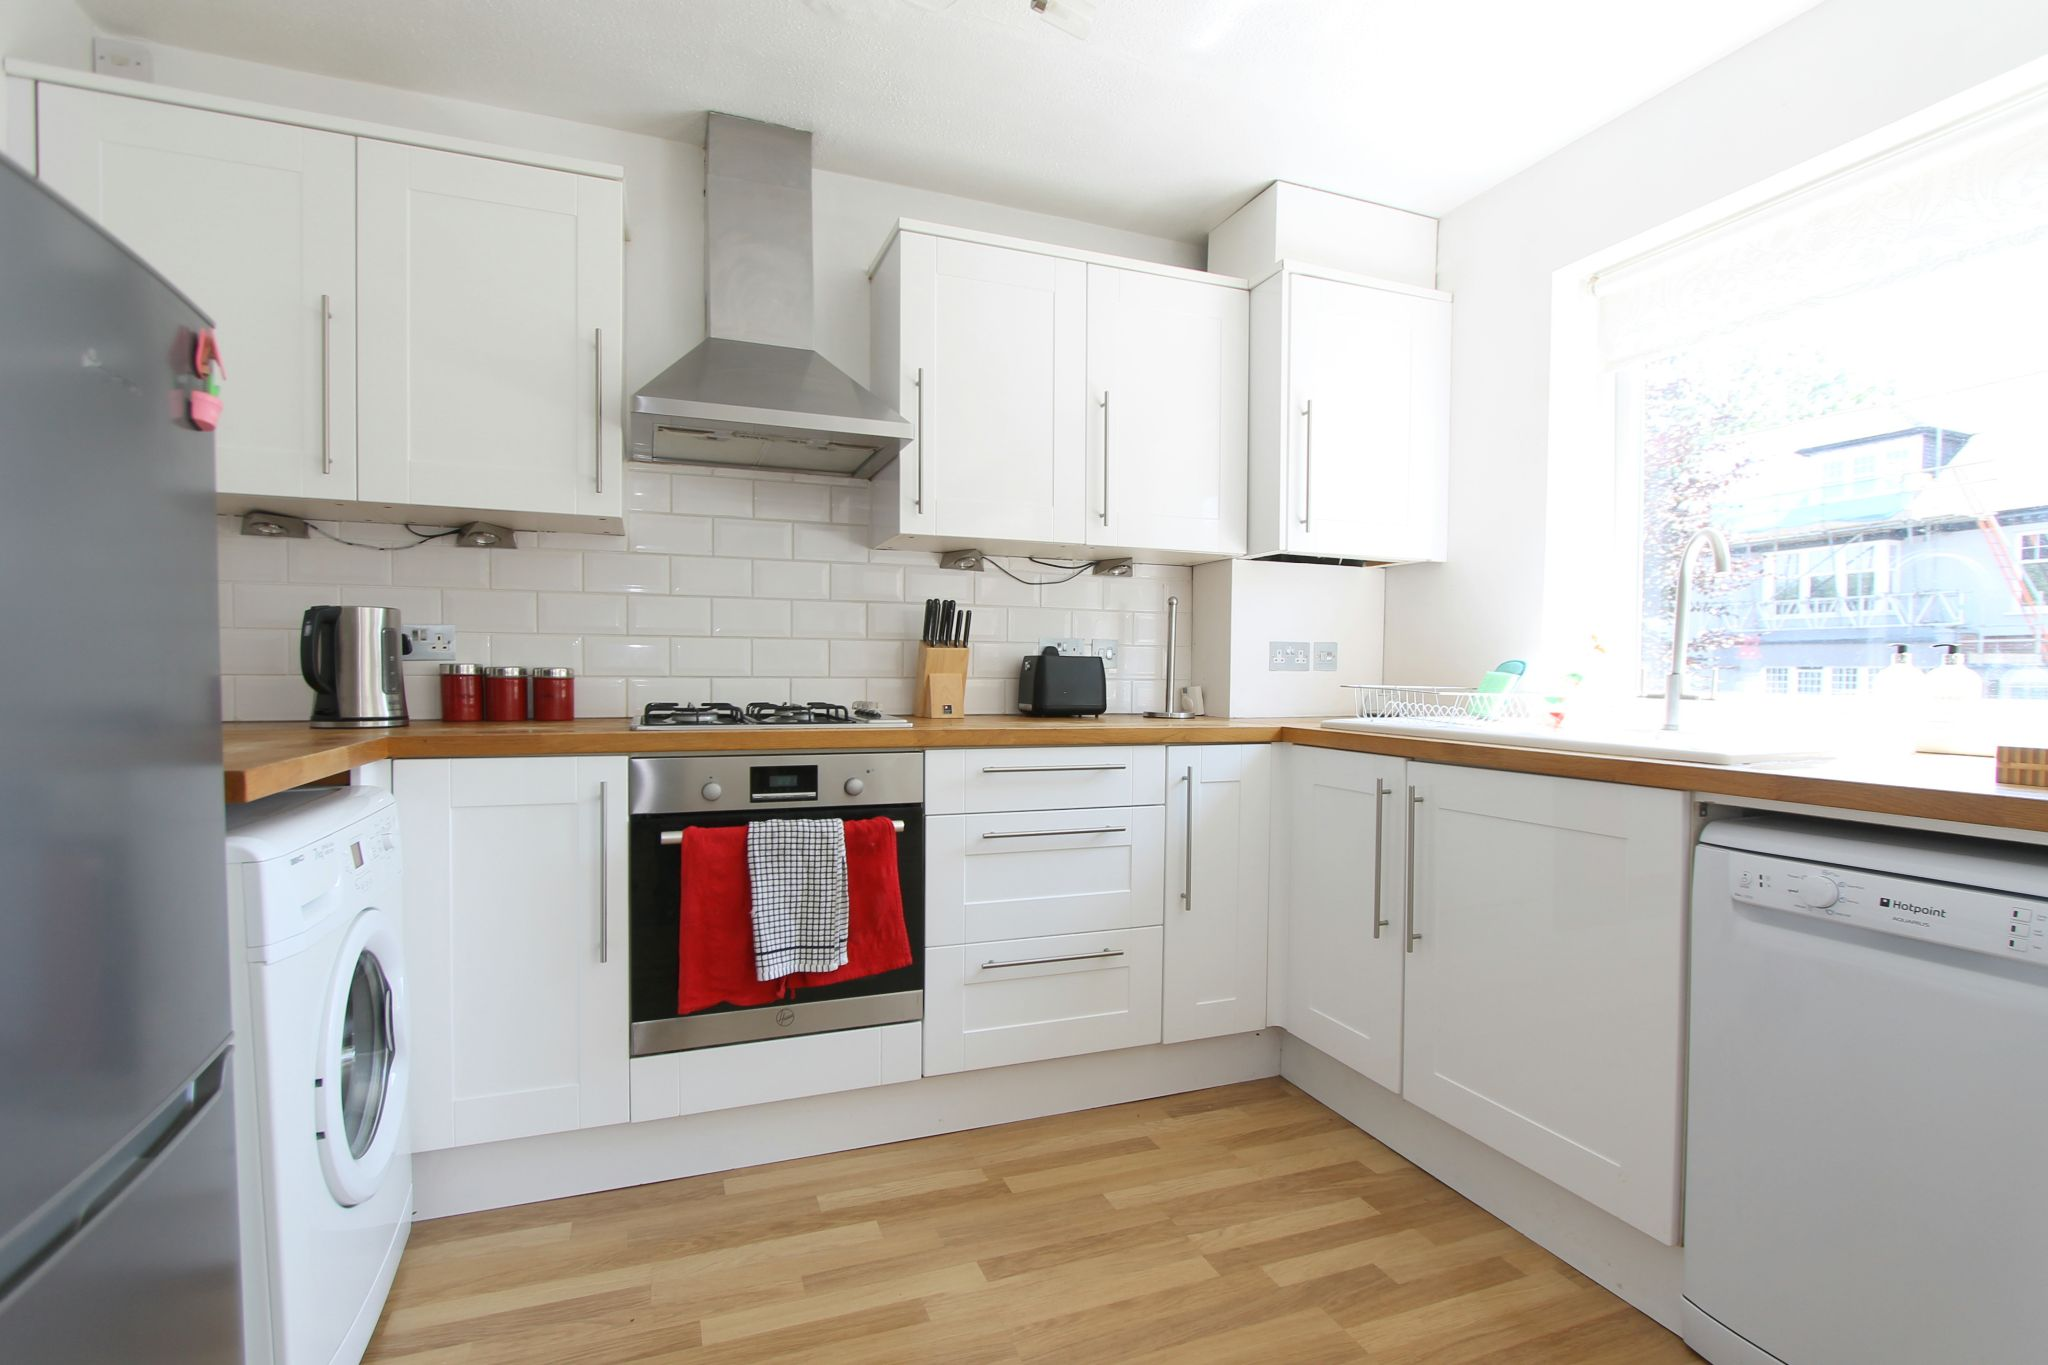 2 bedroom apartment flat/apartment To Let in Cheam - Photograph 4.